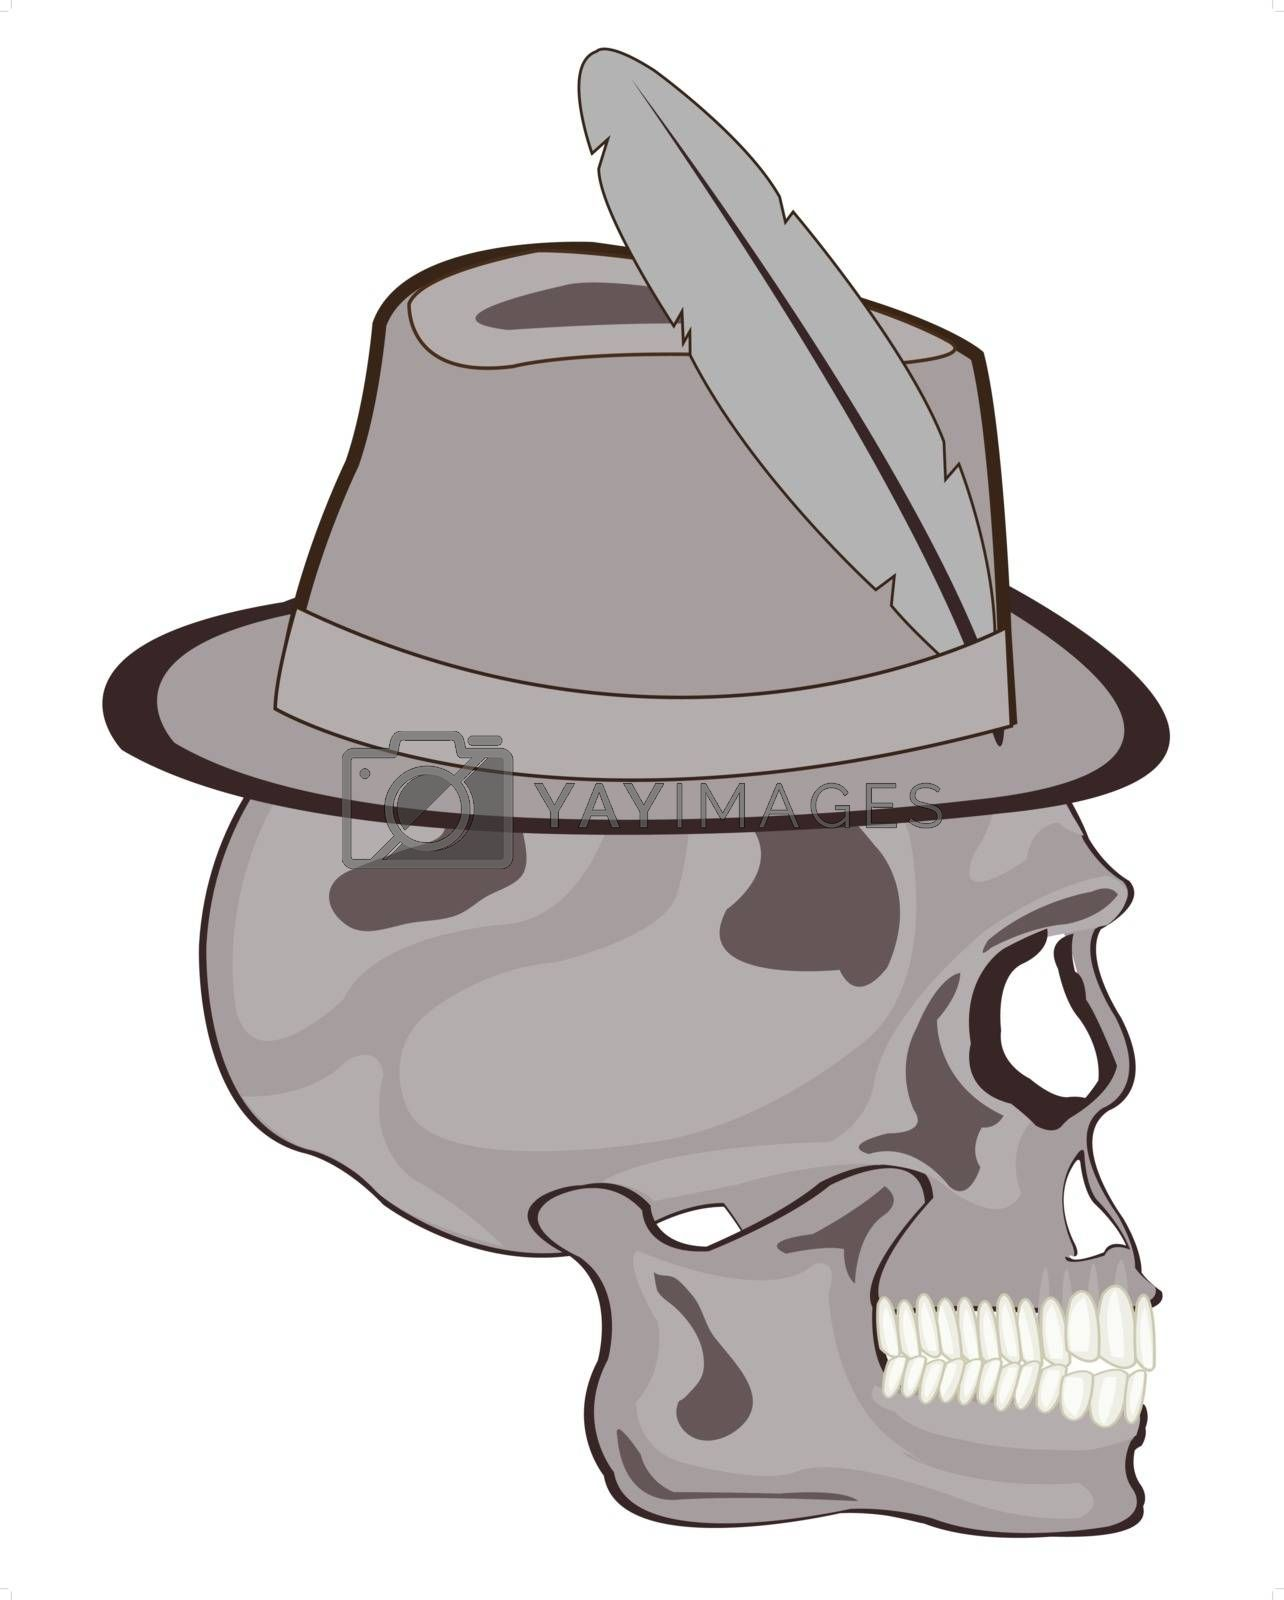 Royalty free image of Skull in hat by cobol1964